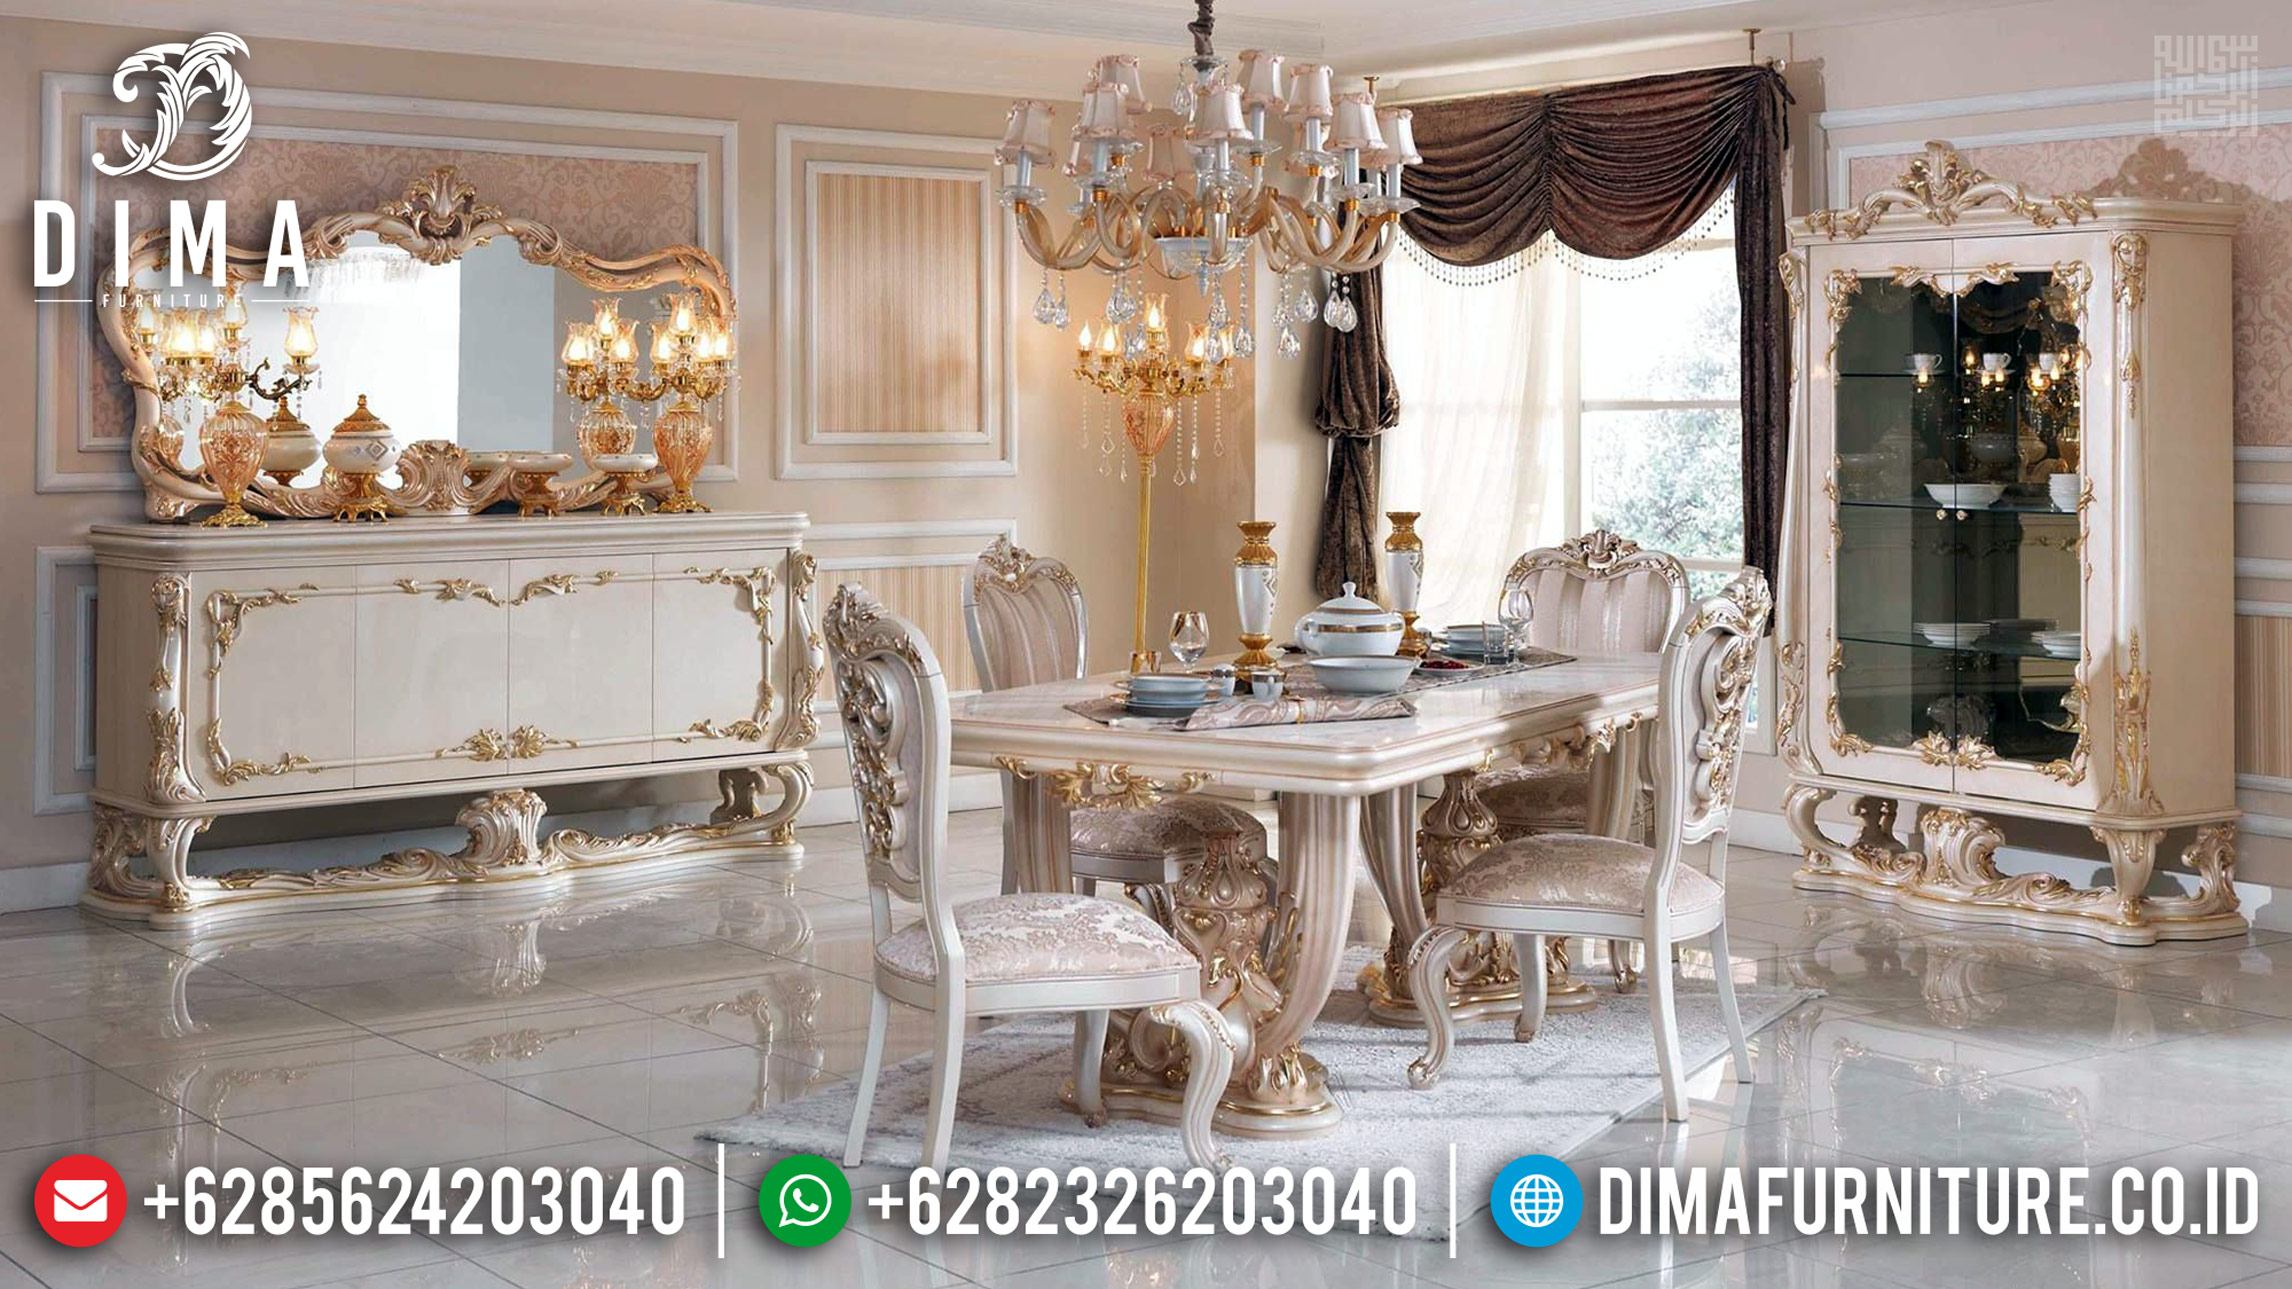 Artistik Design Meja Makan Mewah Jepara Ukiran Luxurian Turkish Mobilya Mm-0737